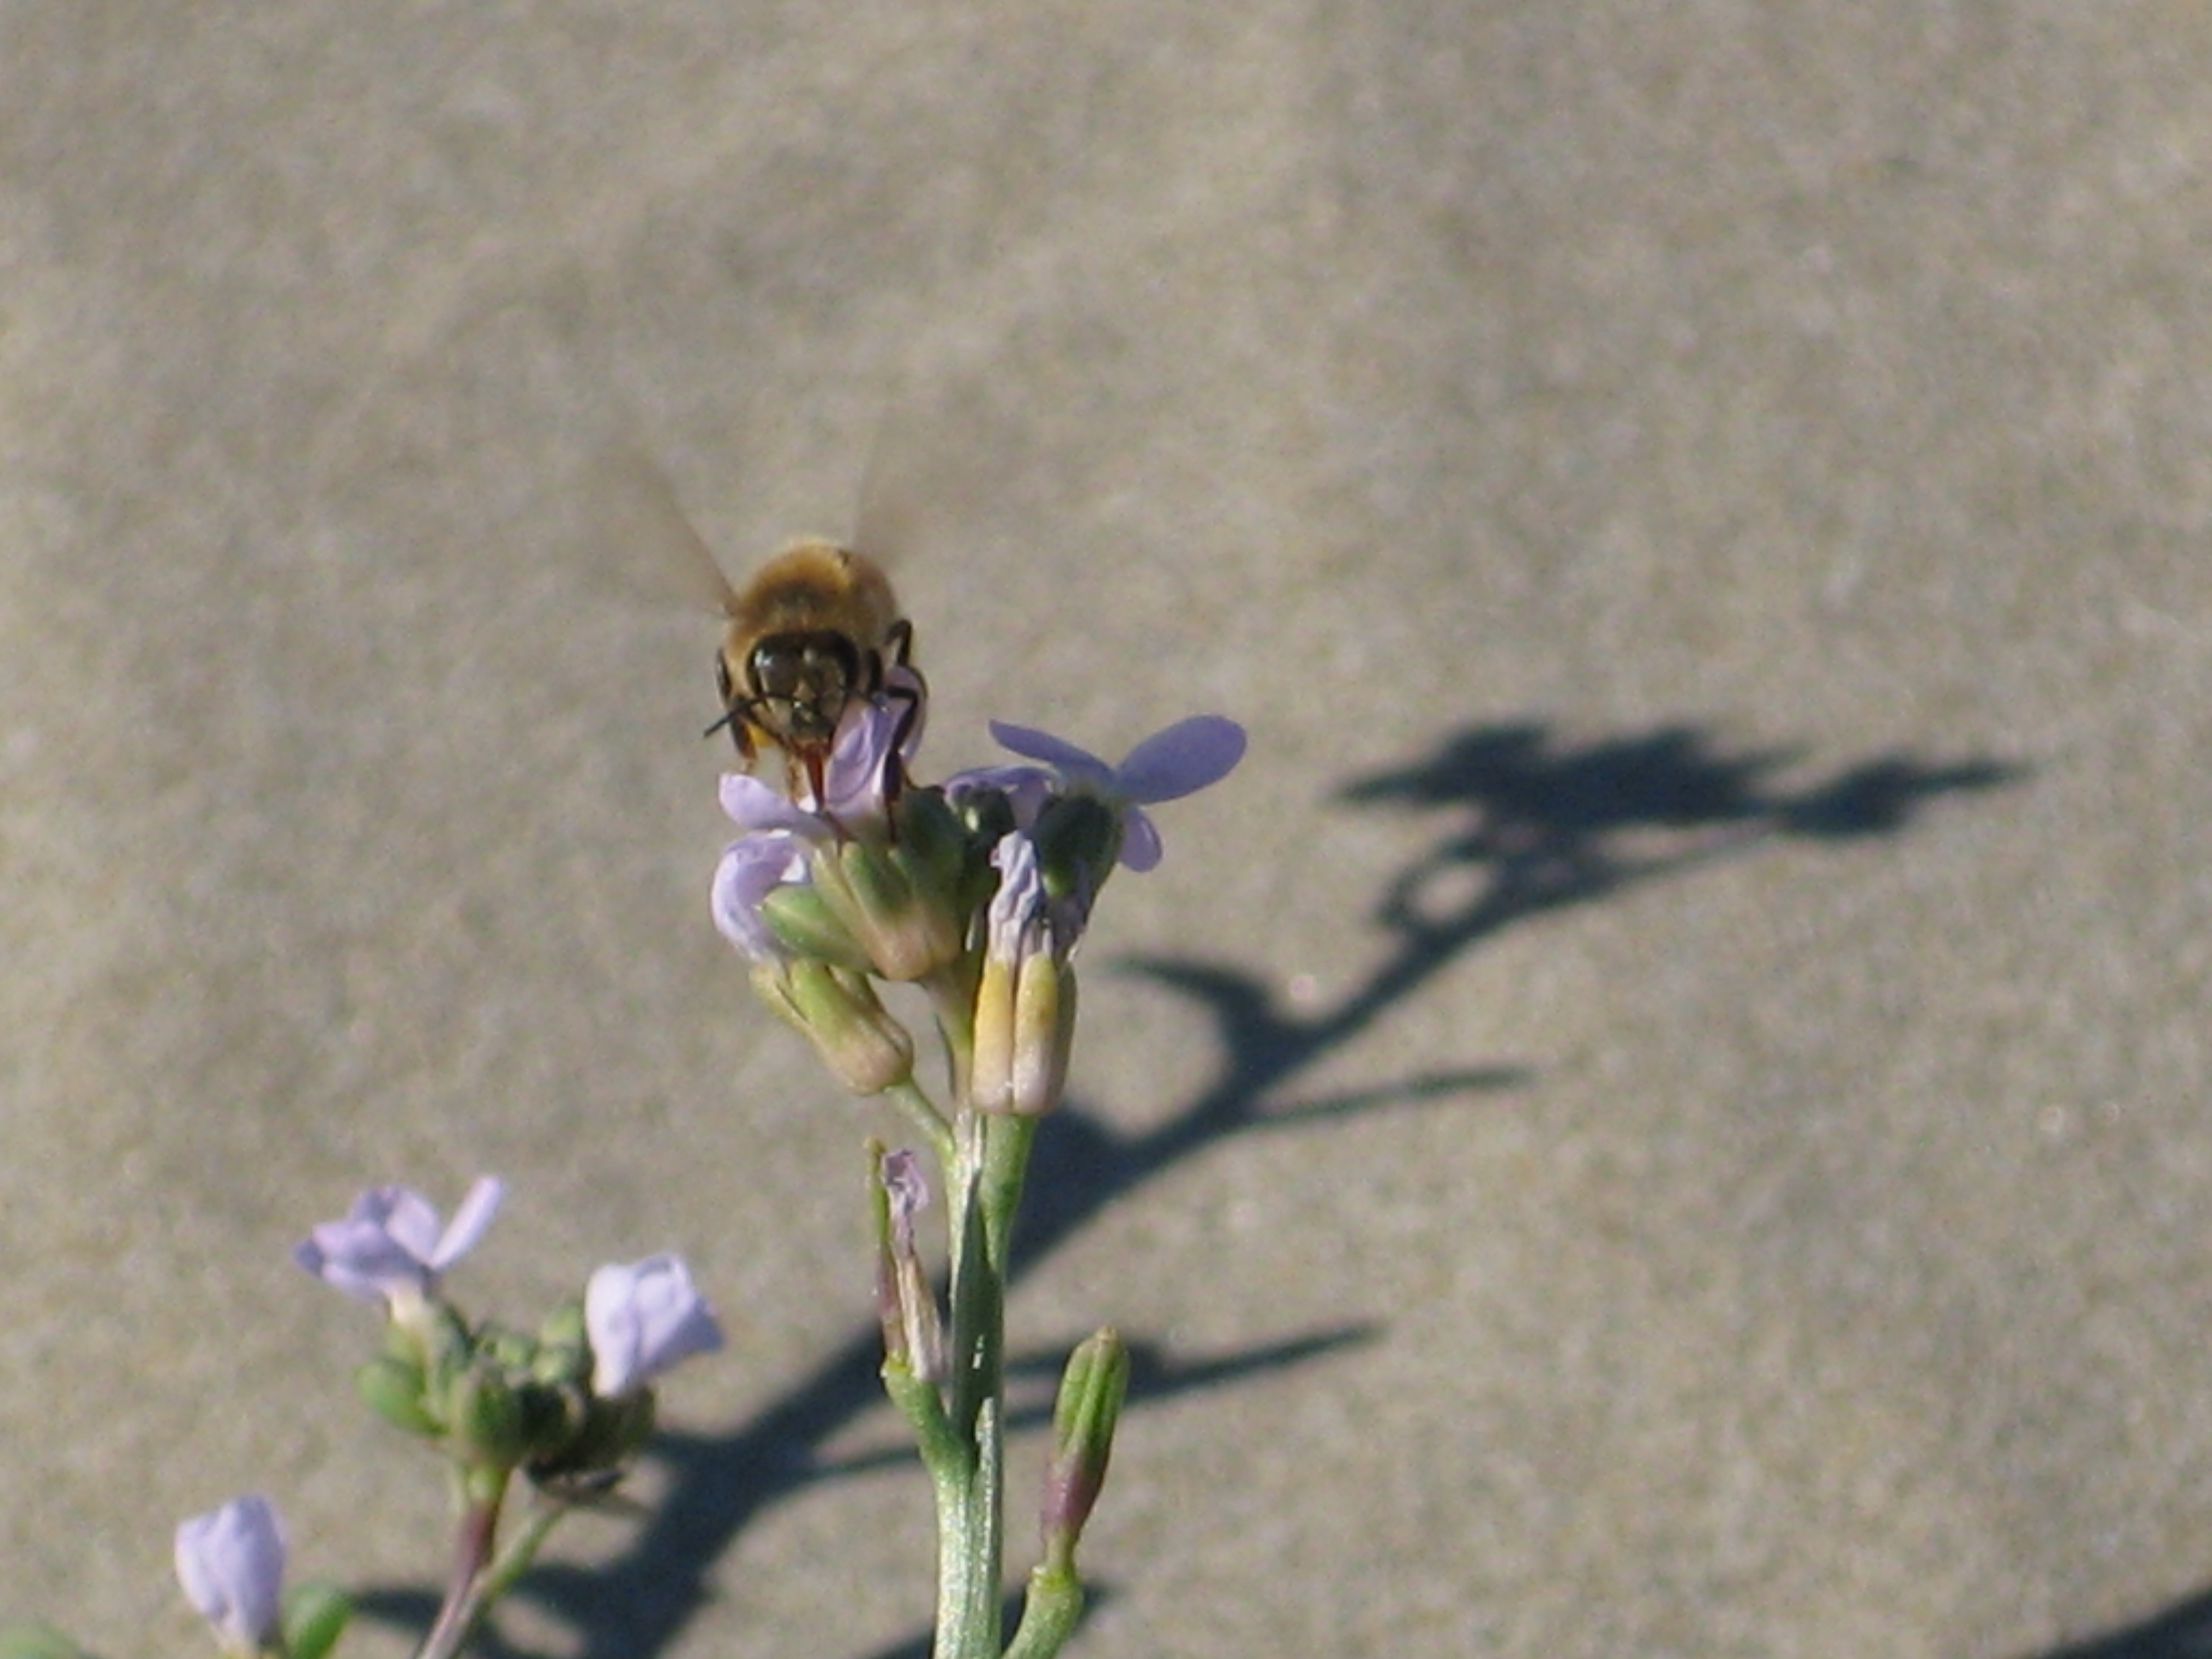 A bee hovering over a purple flower at the beach in Morro Bay, California.